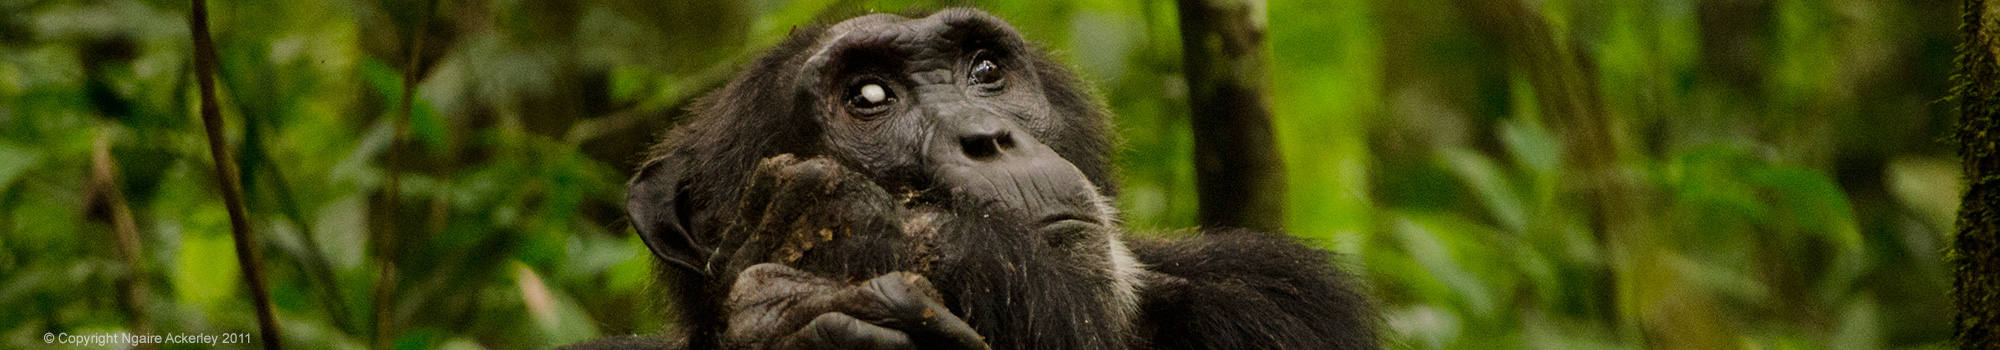 chimp-kibale-forest-copyright-ngaire-ackerley-2011